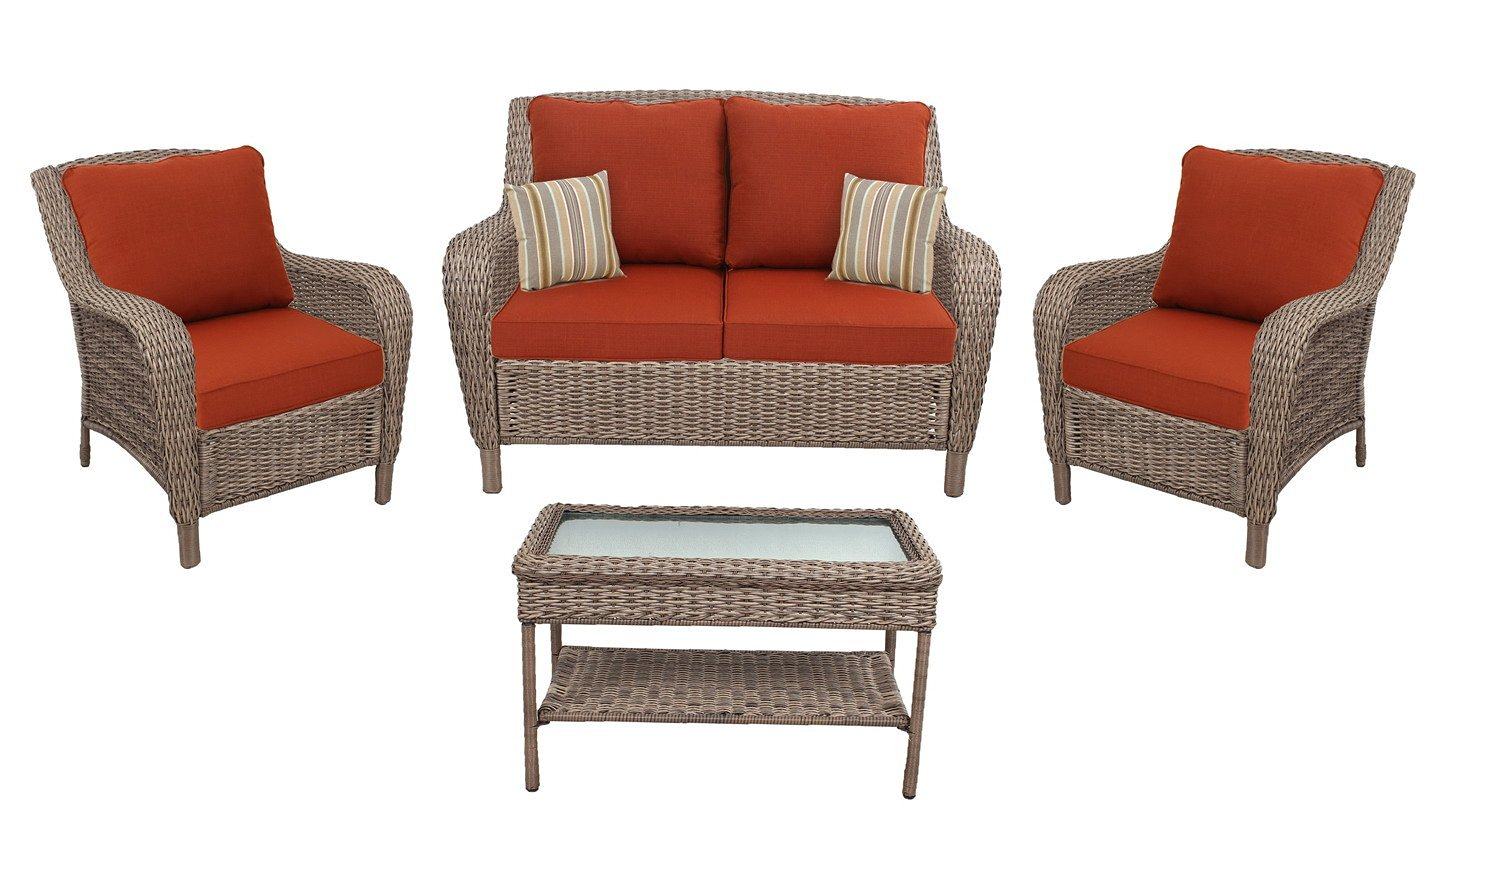 Quality Outdoor Living Gettysburg All-Weather Resin Wicker Deep Seating Patio Set, 4-Piece, Brown with Red Cushions